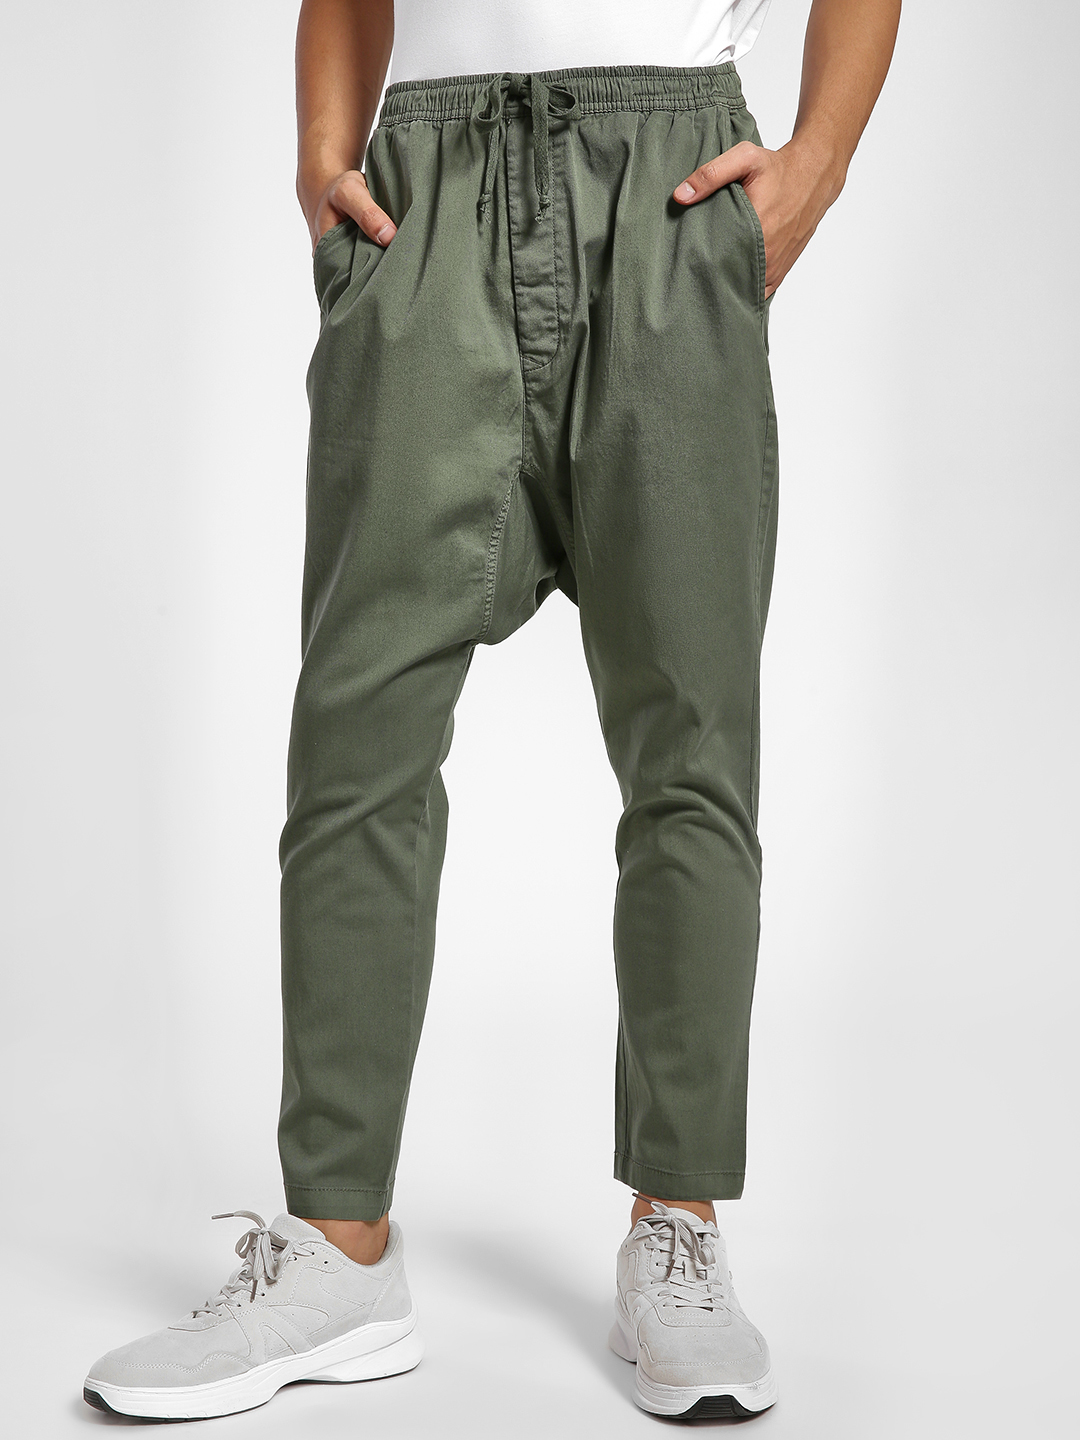 Alcott Khaki Drop Crotch Carrot Fit Jog Pants 1